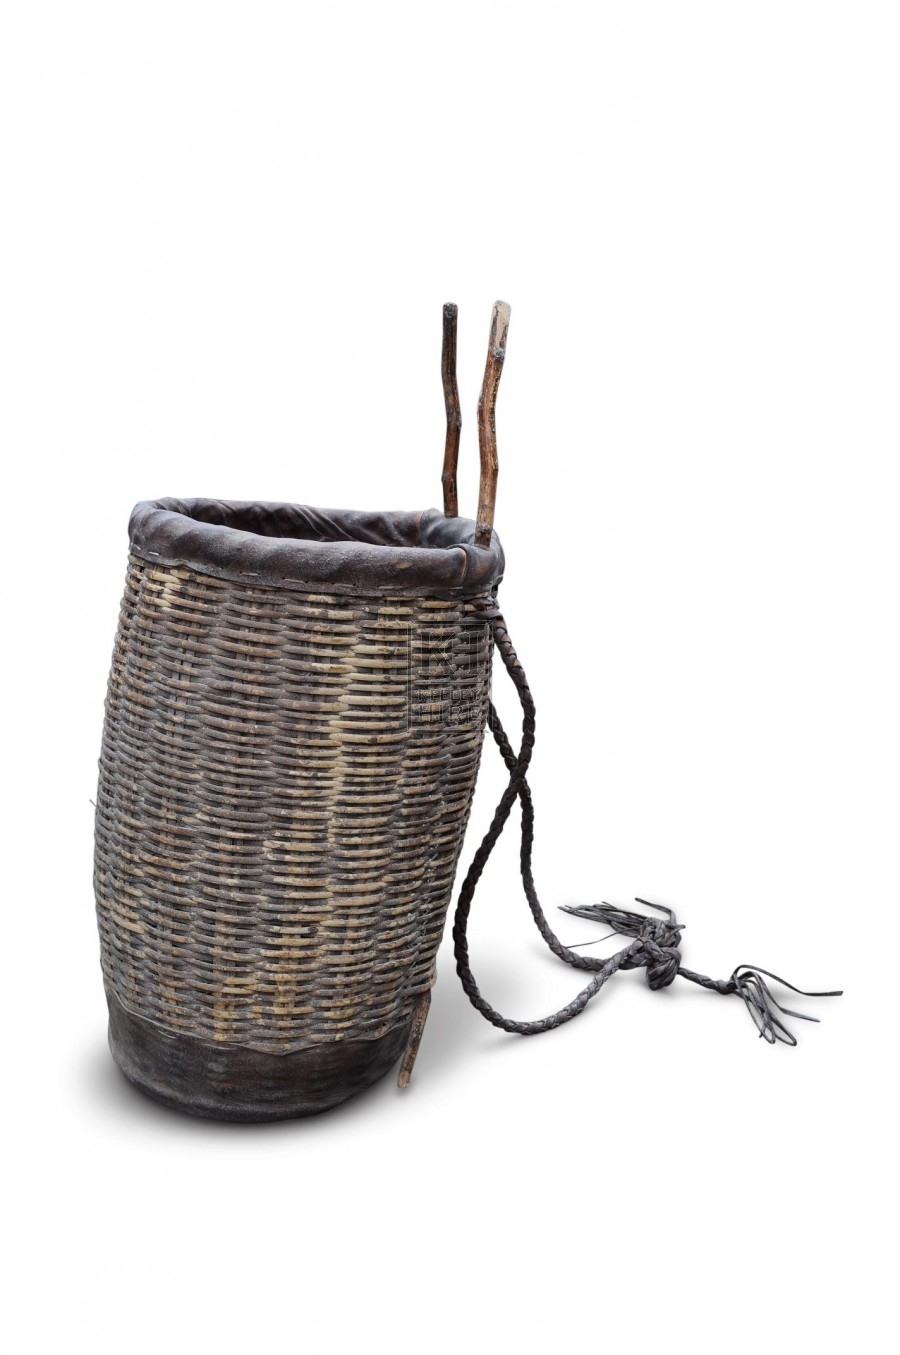 Wicker back basket with braided leather